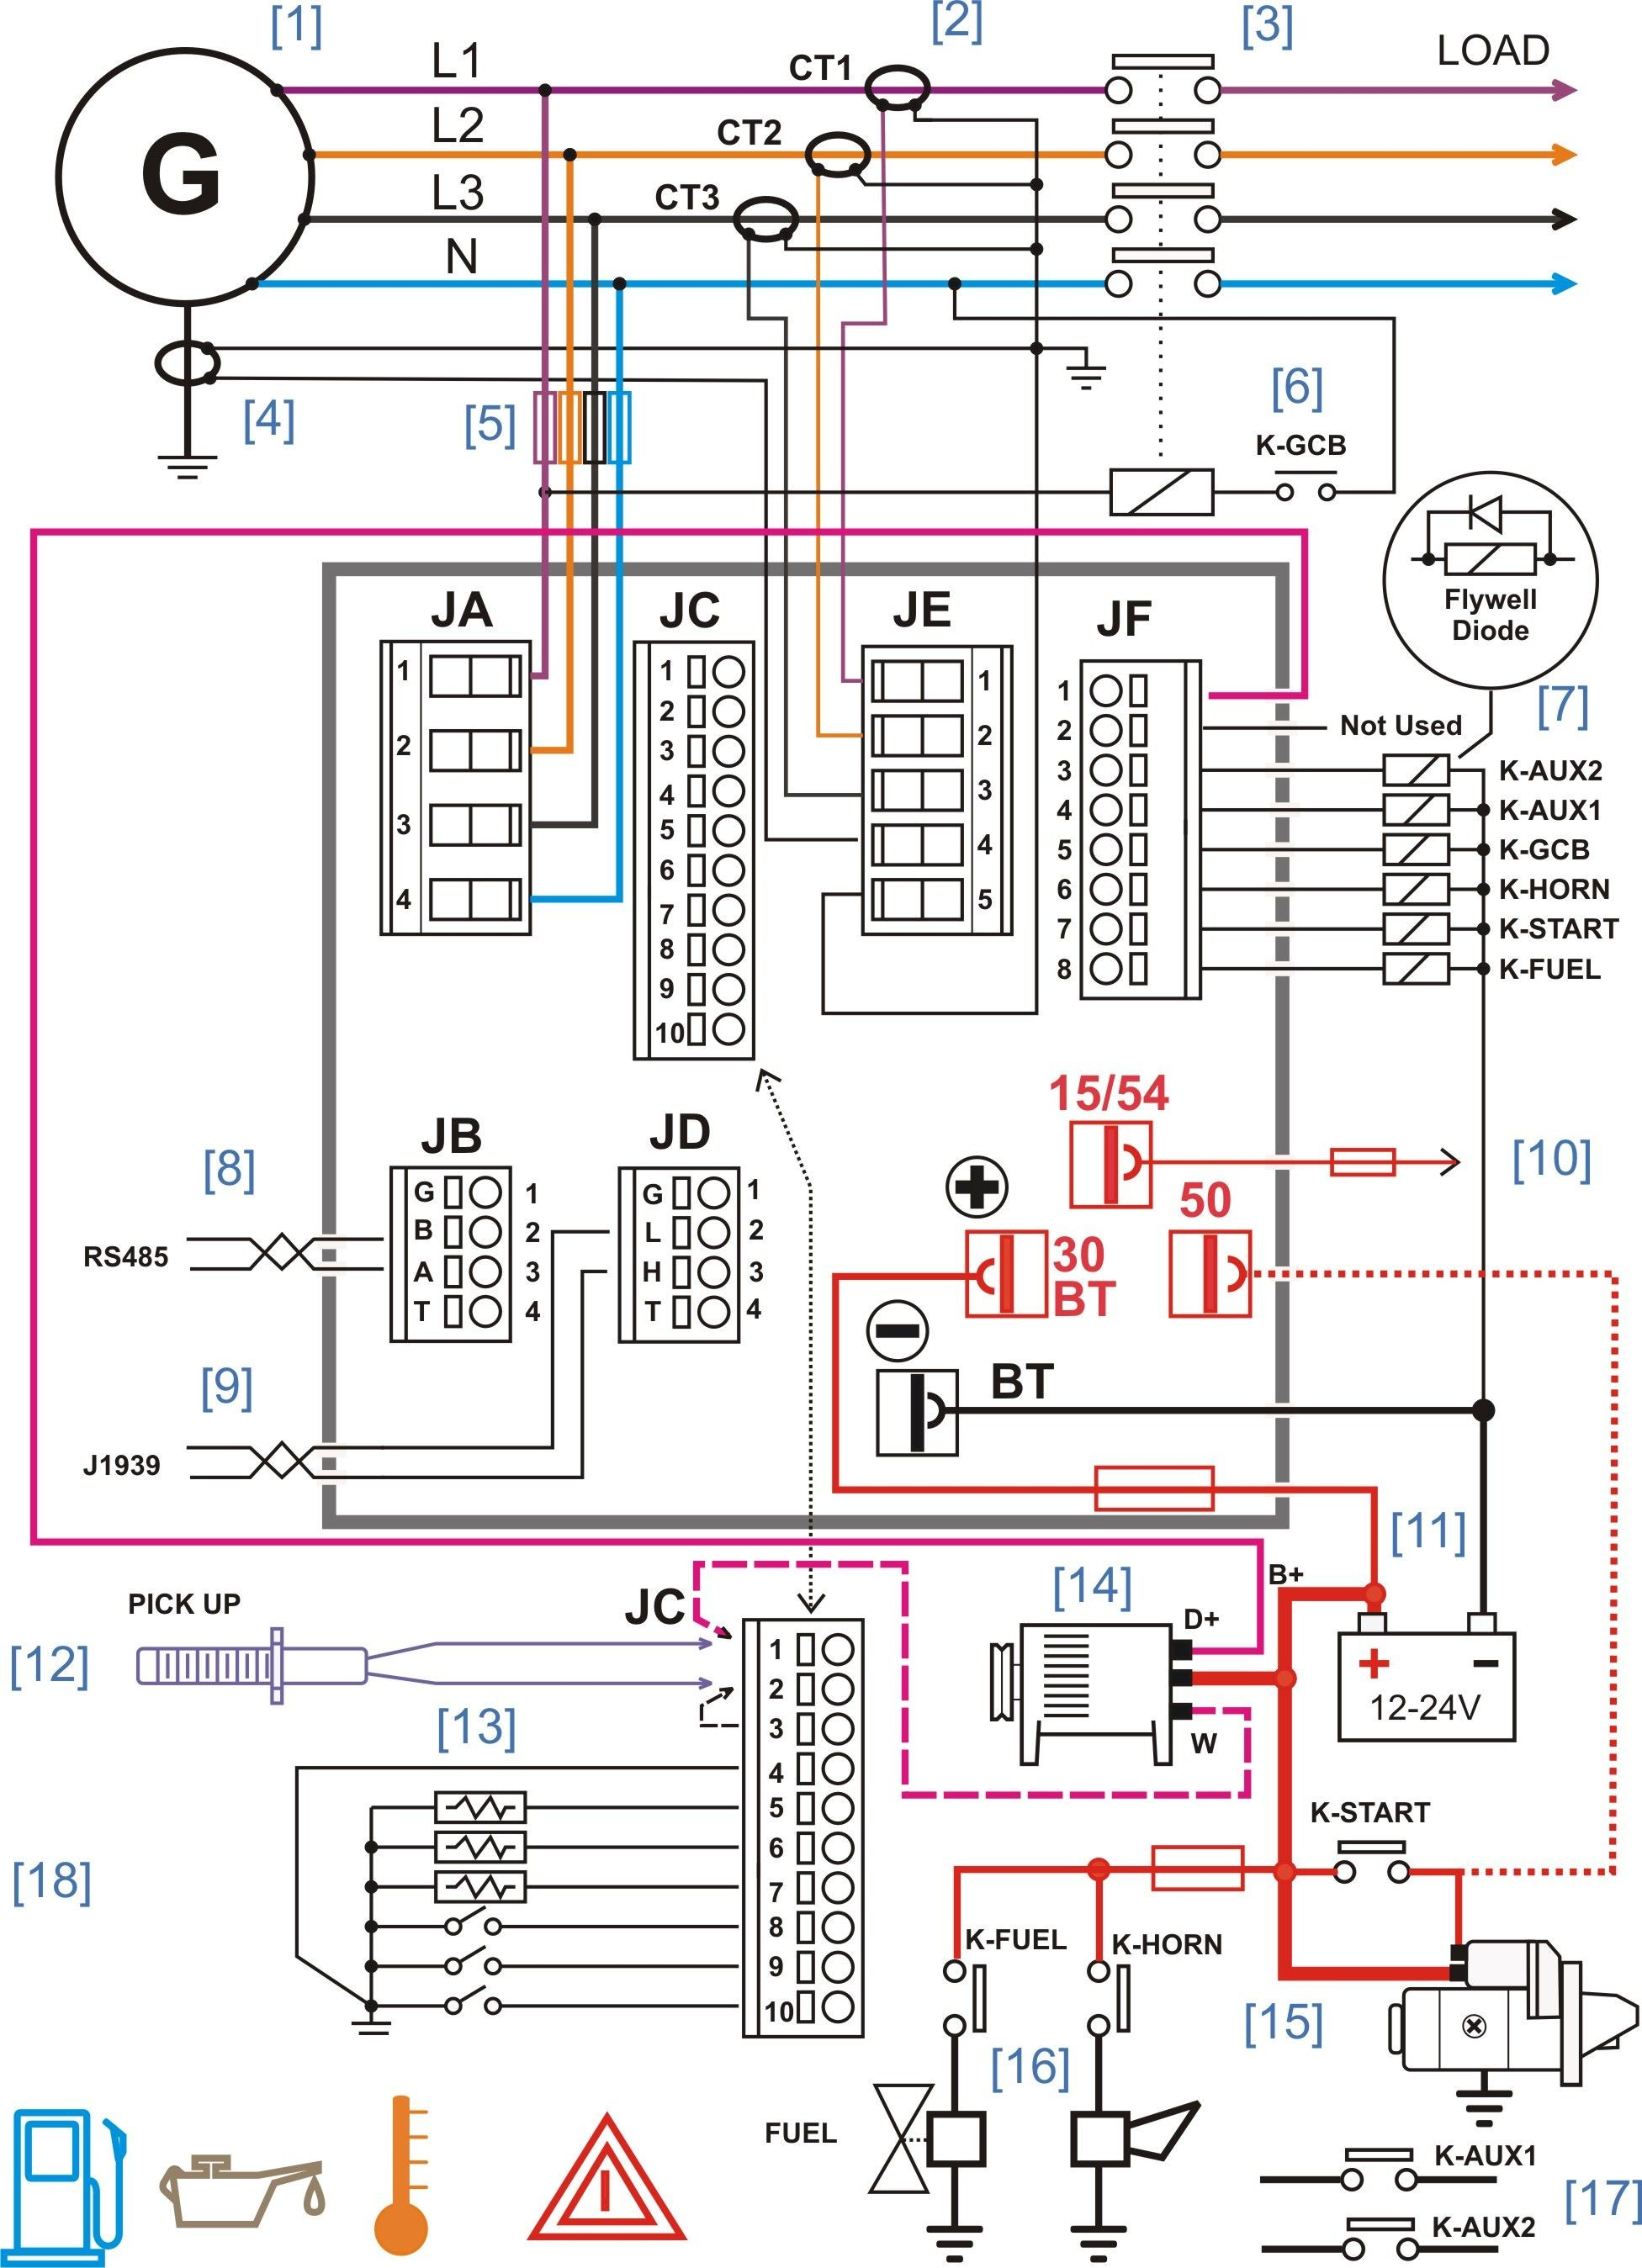 Sony Cdx Gt260mp Wiring Diagram Radio - Data Wiring Diagrams •